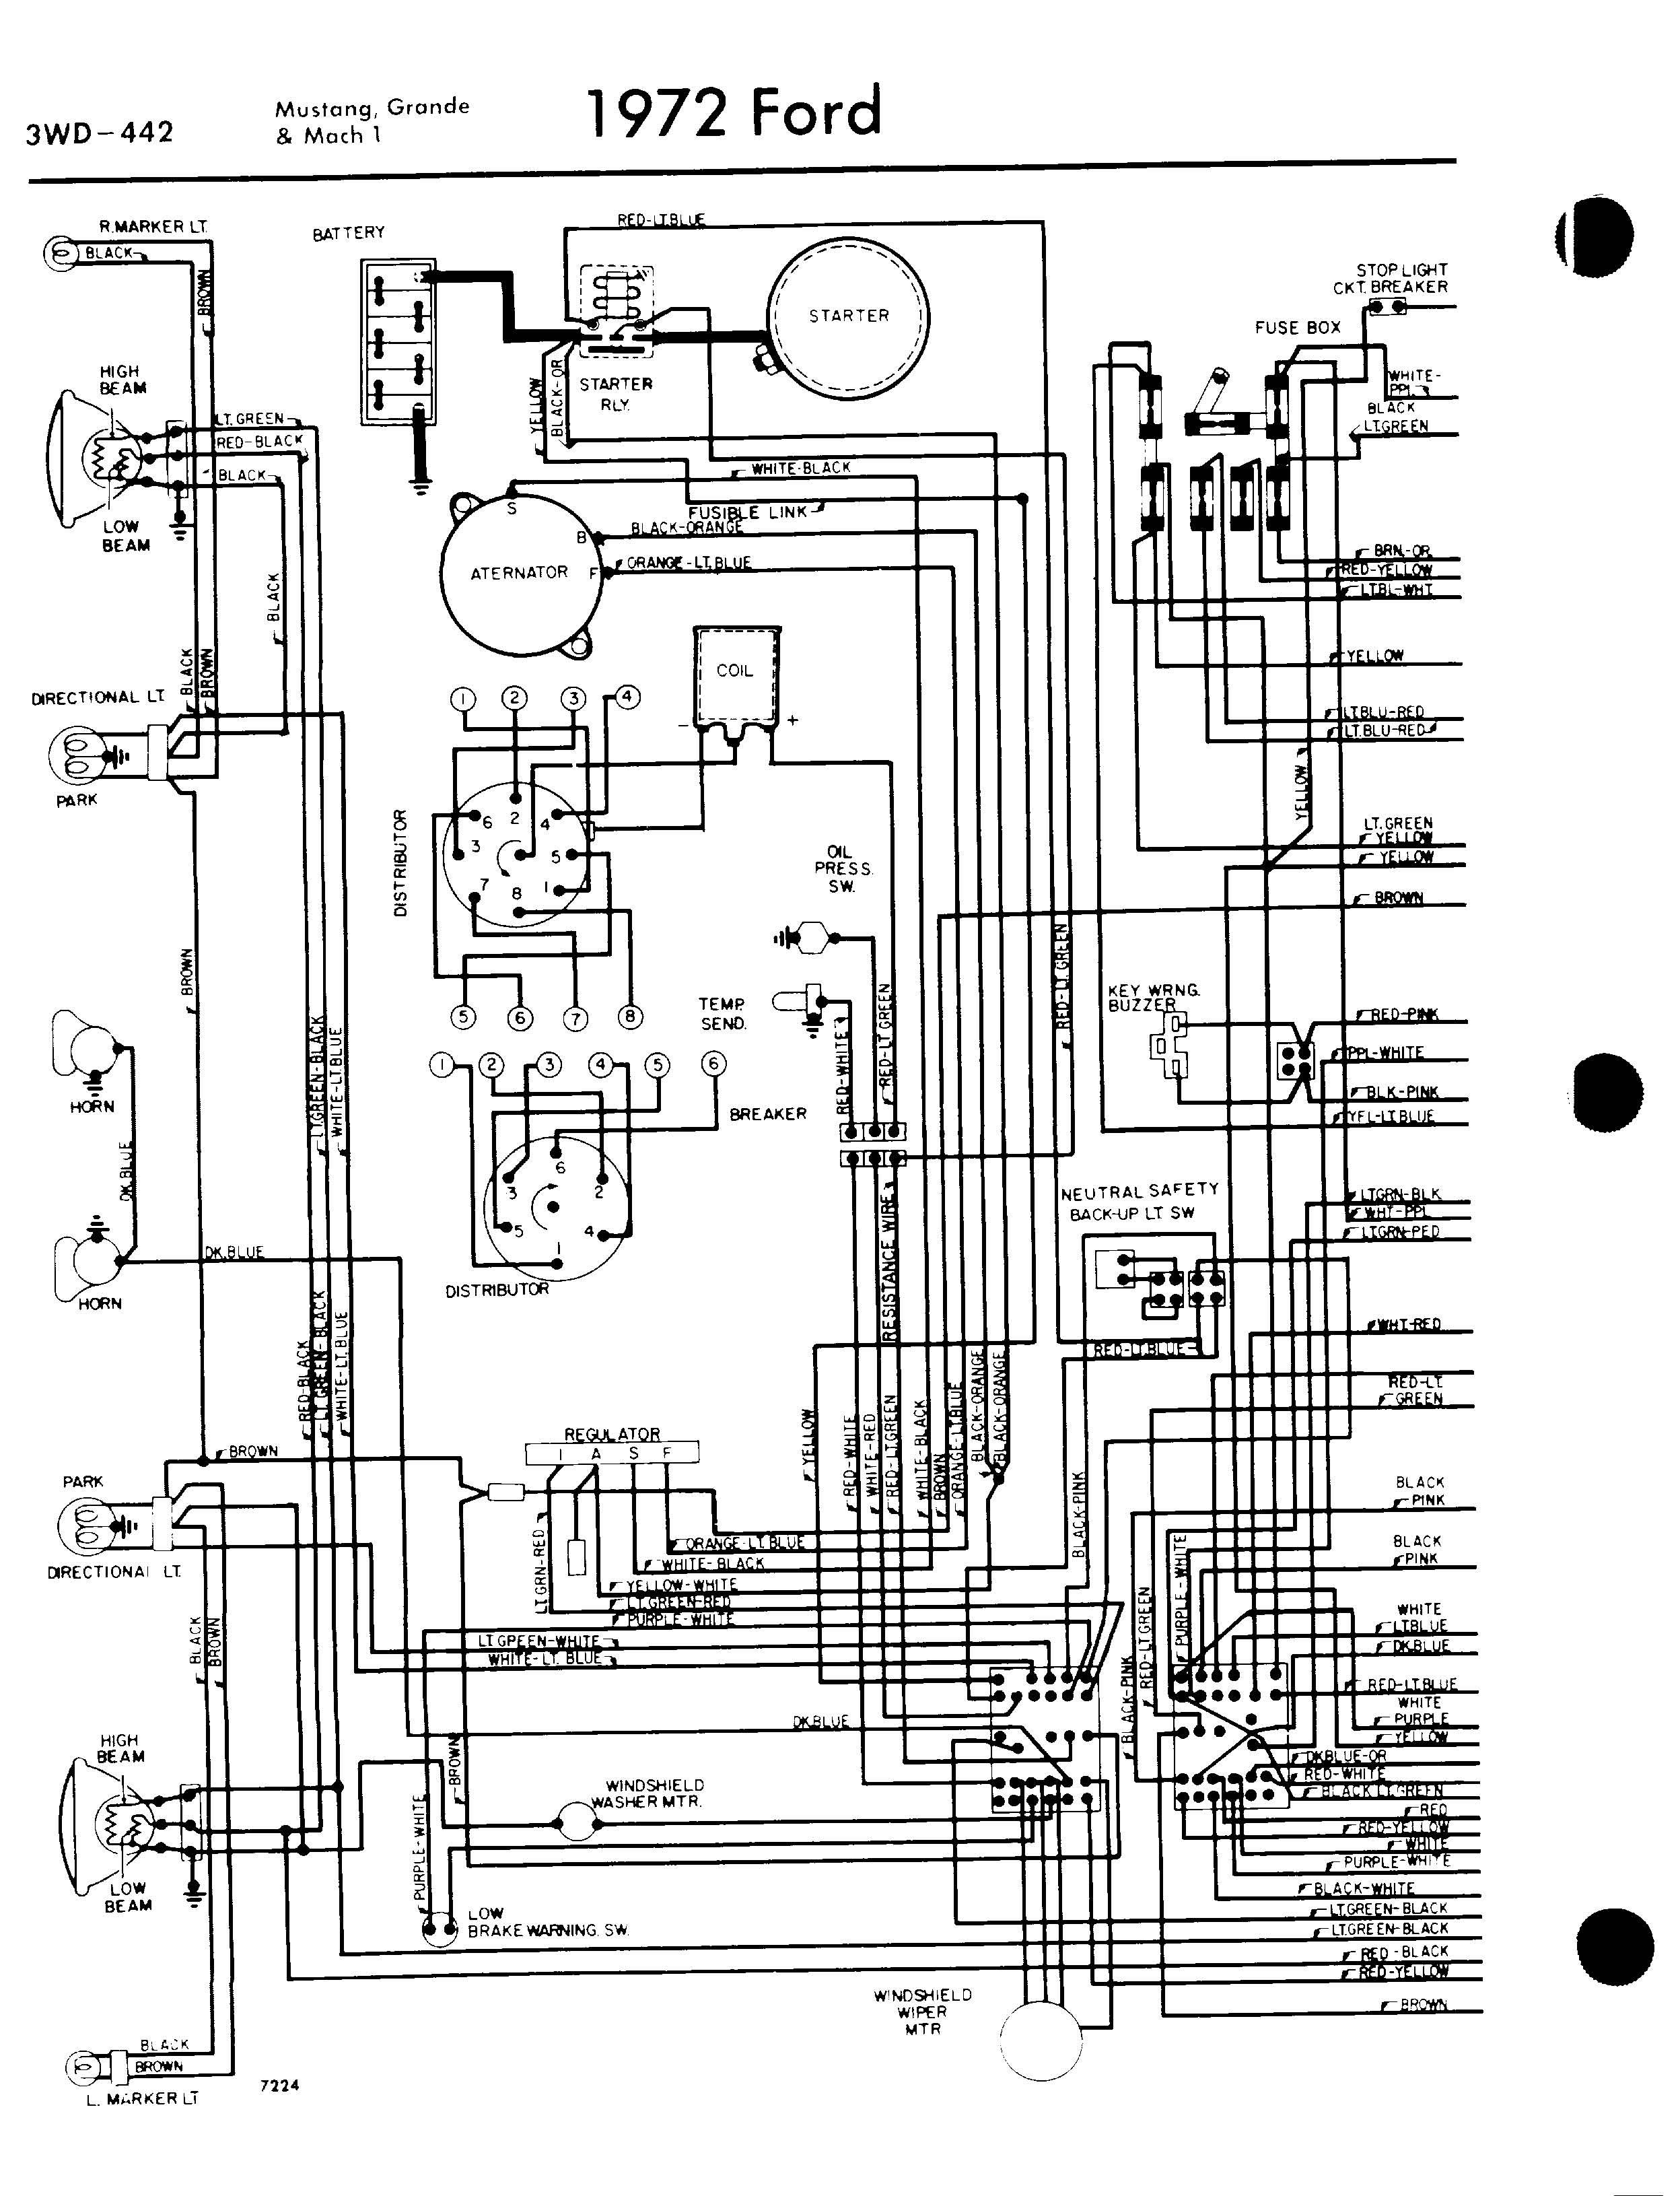 1970 mustang wiring diagram free - civic fog light wiring diagram -  corollaa.yenpancane.jeanjaures37.fr  wiring diagram resource